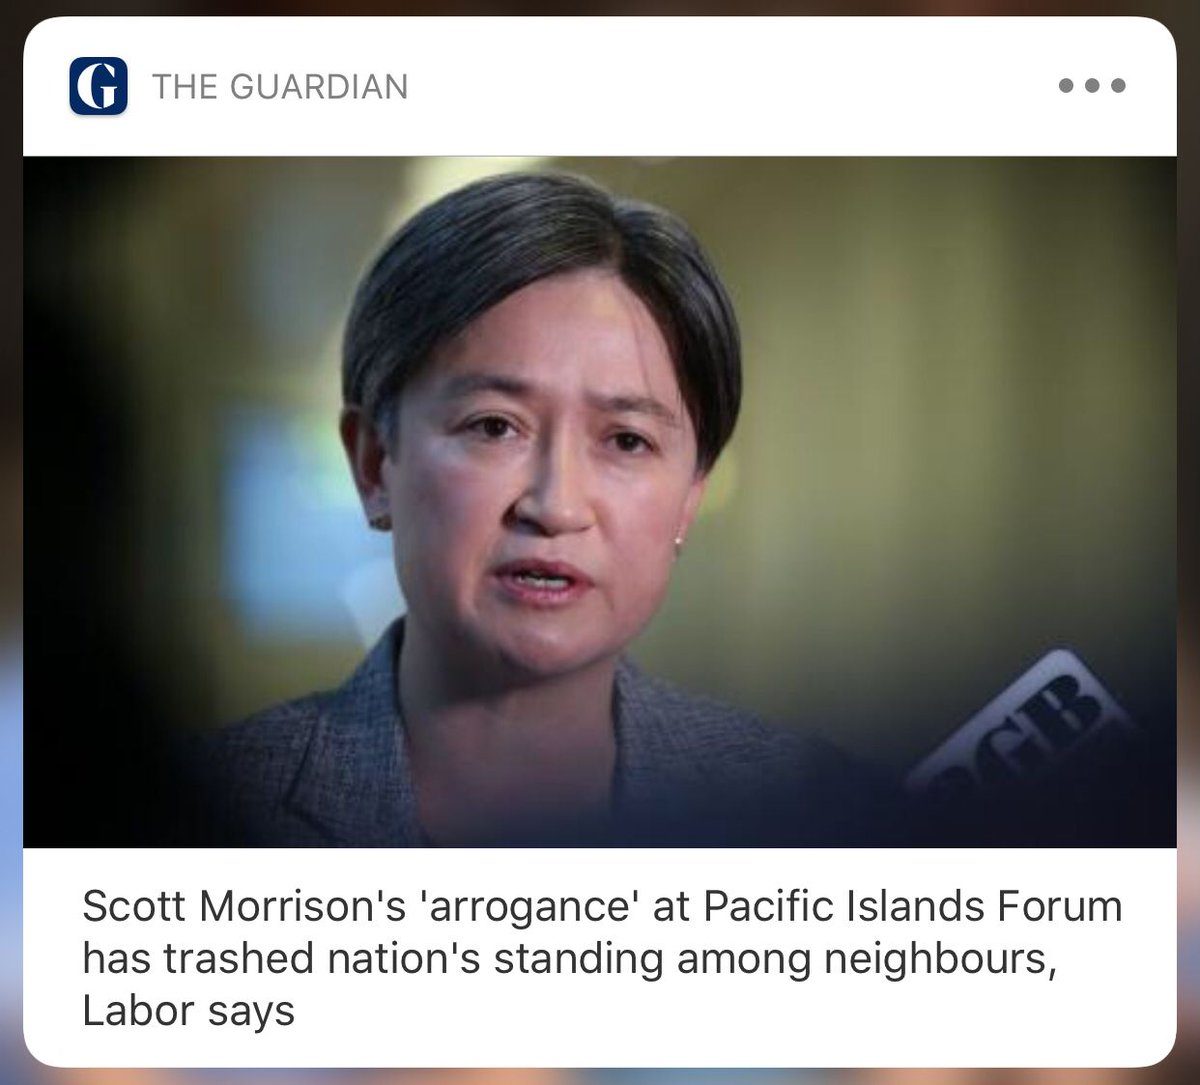 Scott Morrison has alienated our friends and trashed Australias influence in the pacific region with his arrogance on climate, Labor says buff.ly/2KBMBN6